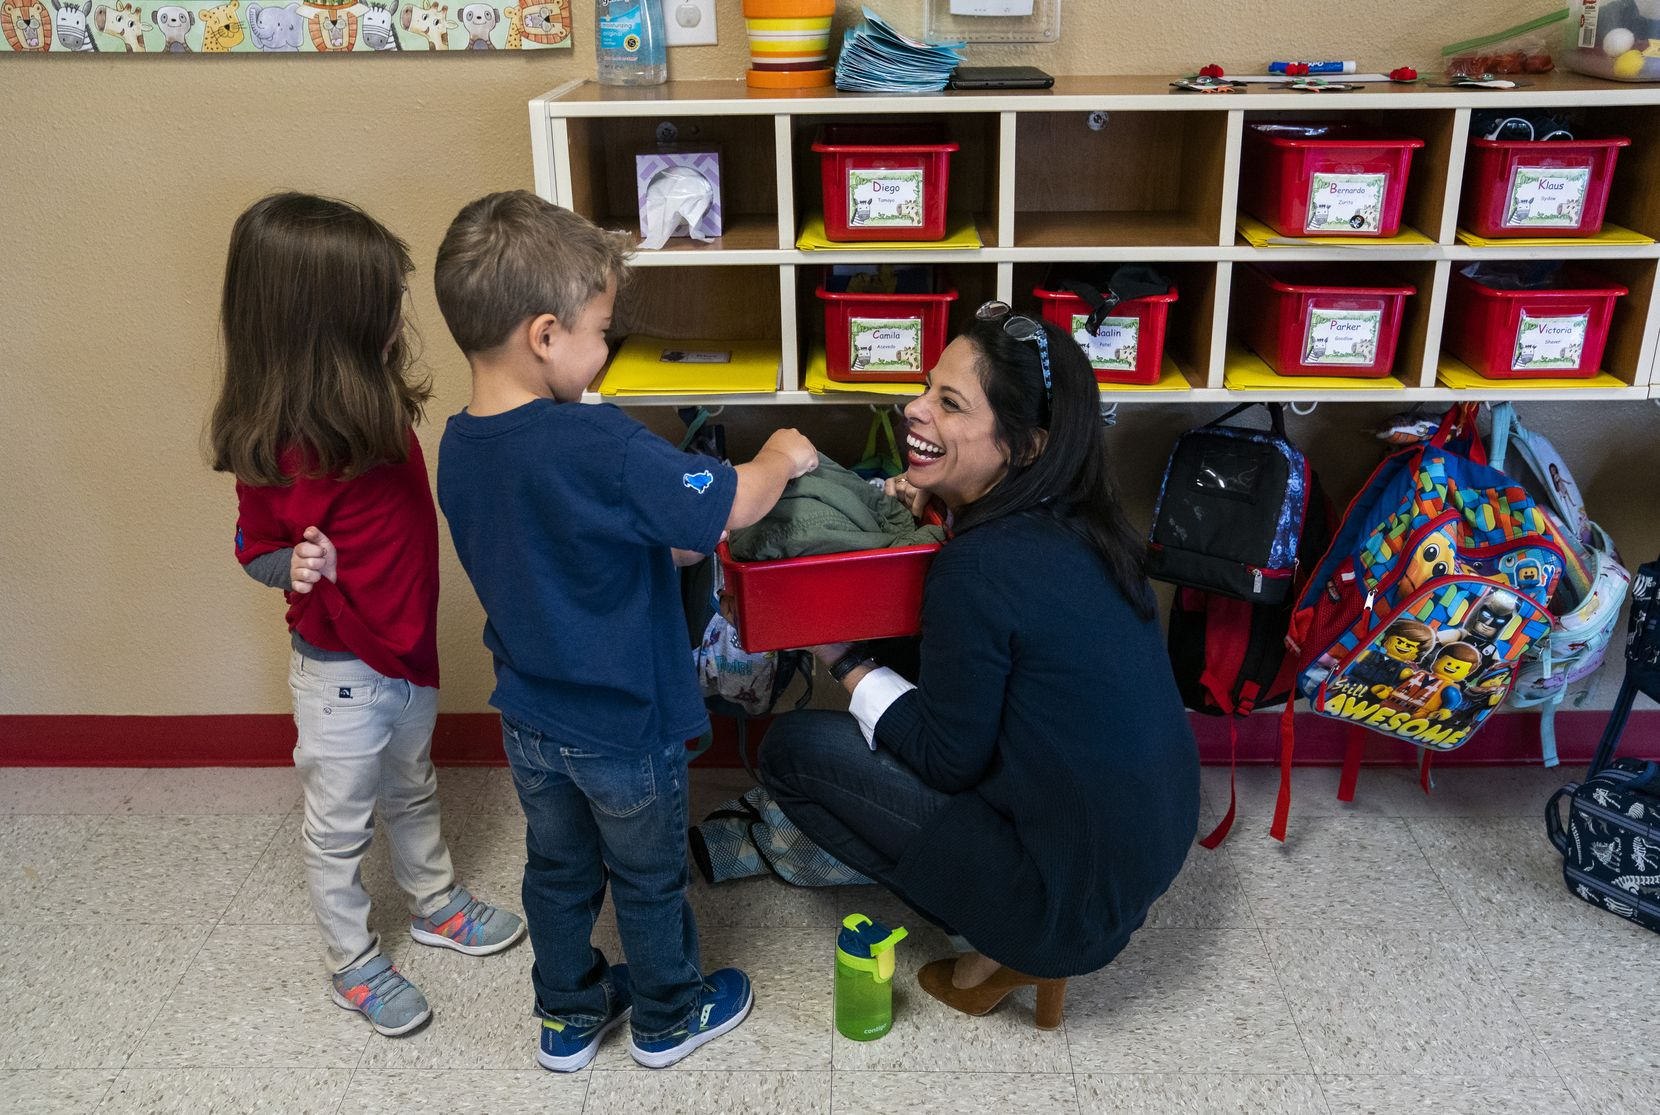 Director Jennifer Granadillo helps Rhys Yanez, 4, find his jacket in a classroom on Nov. 18, 2019, at Spanish Schoolhouse in Coppell. Sofia Morales, 4, is at left. Granadillo is among several Venezuelan teachers at the Spanish-speaking preschool.